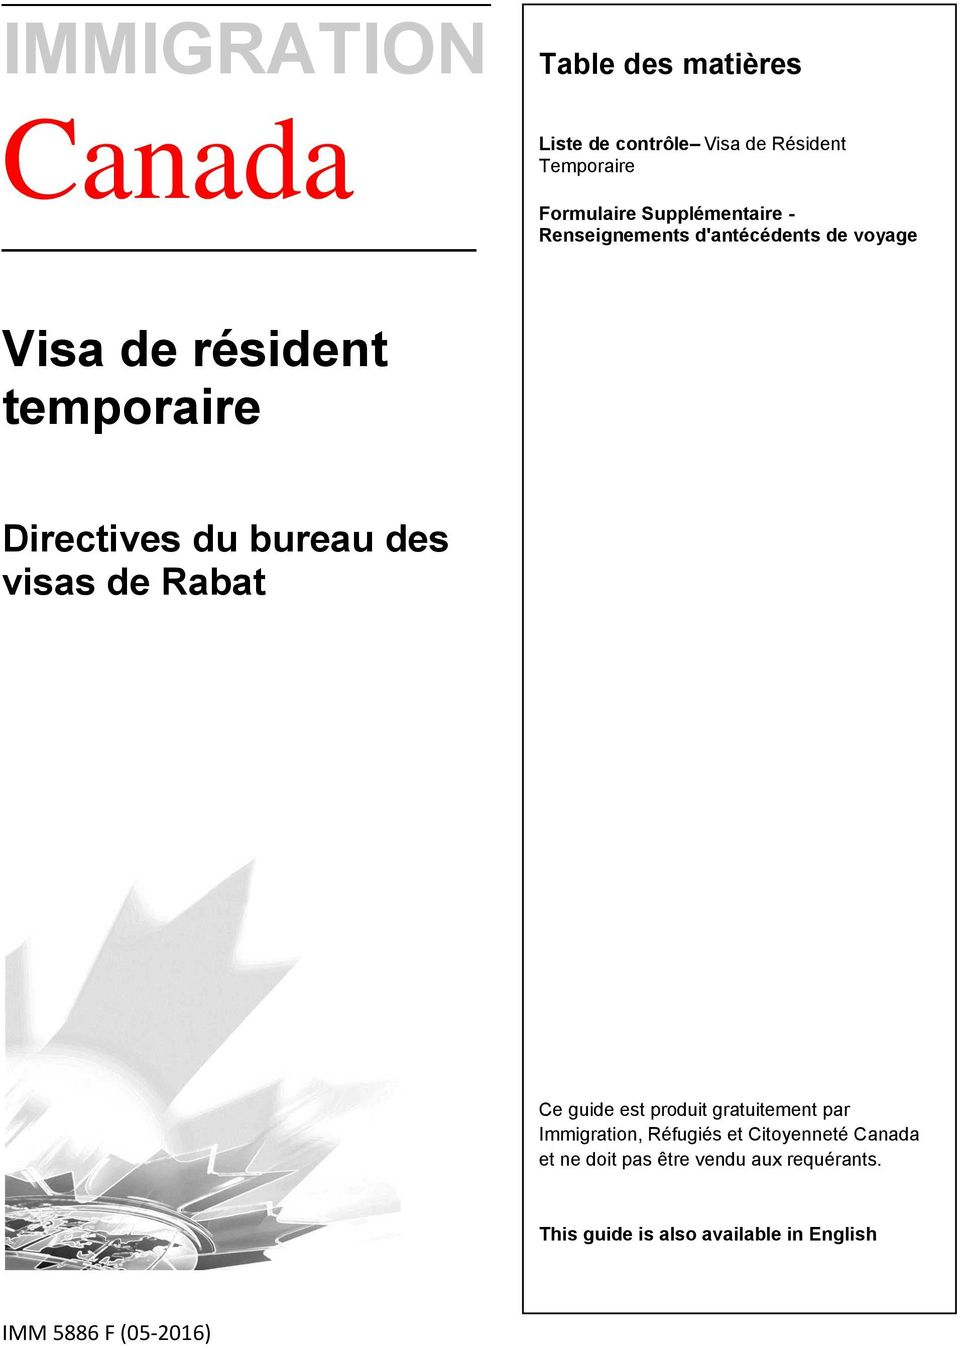 immigration canada visa de r sident temporaire. Black Bedroom Furniture Sets. Home Design Ideas